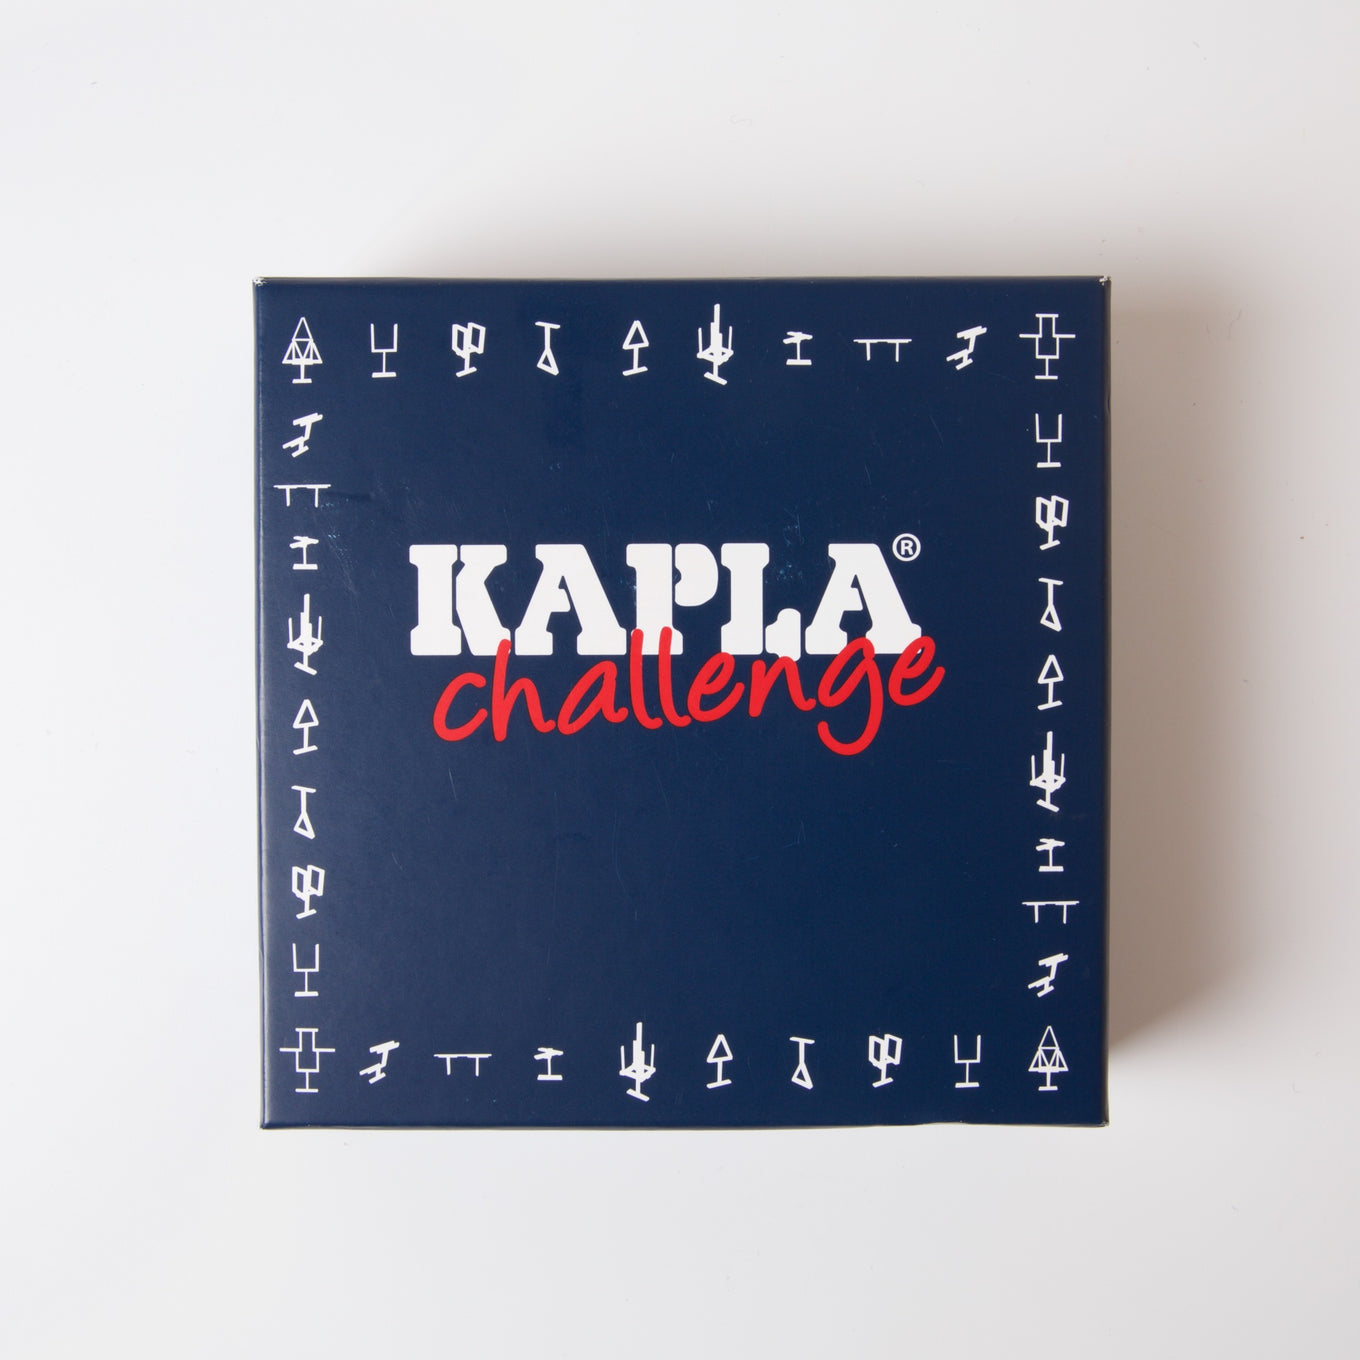 The Kapla Challenge